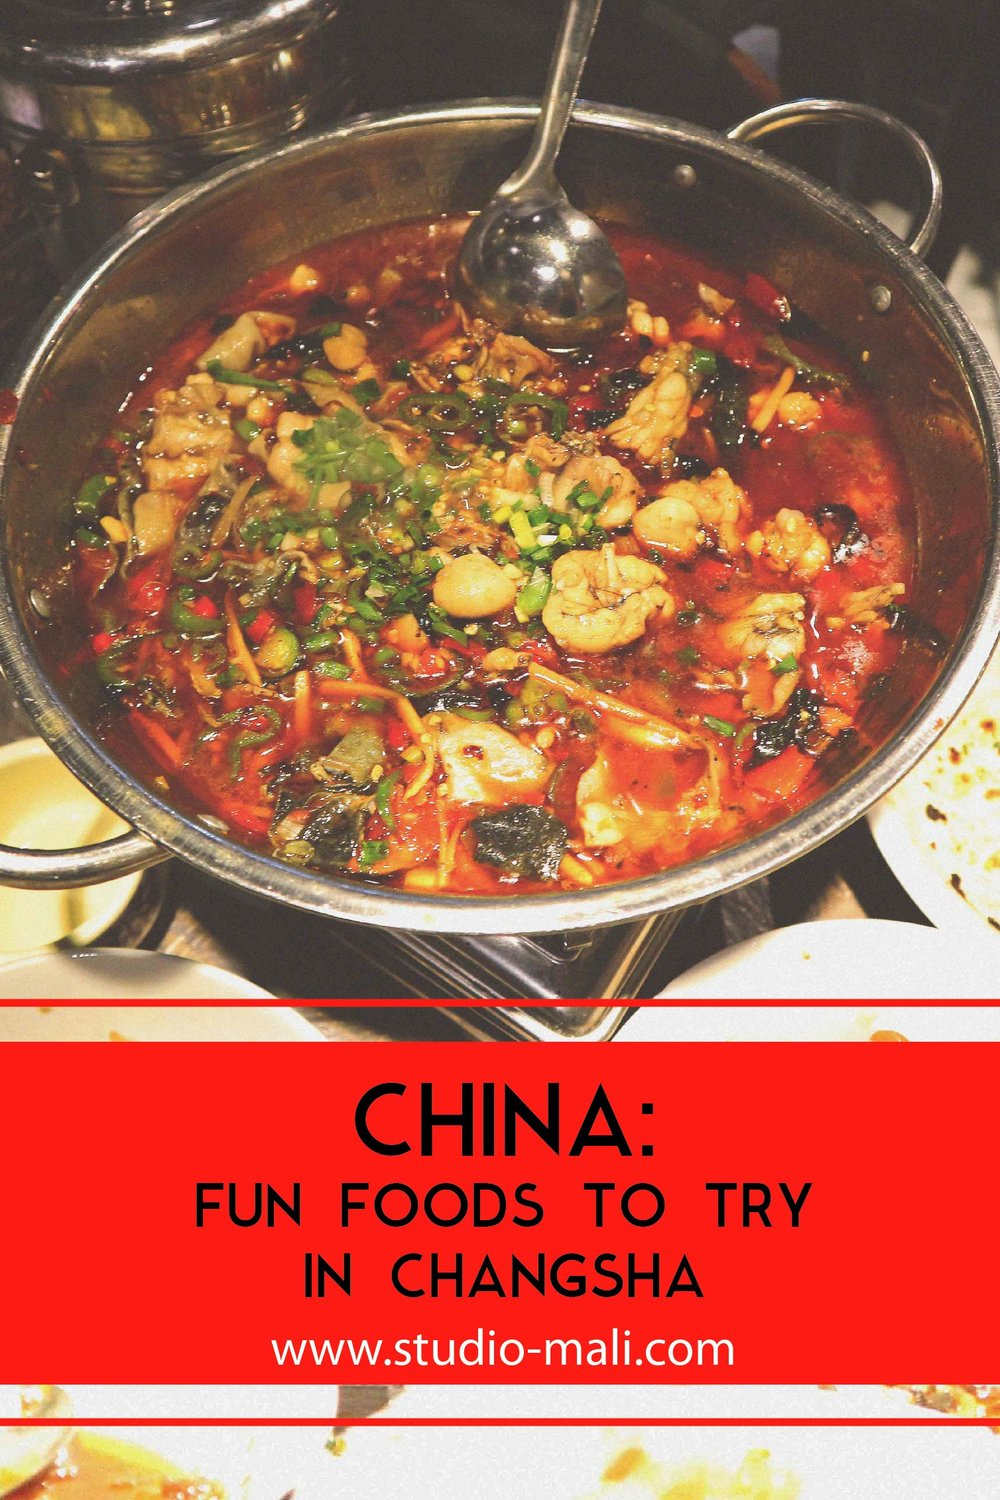 China: Fun Foods To Try In Changsha